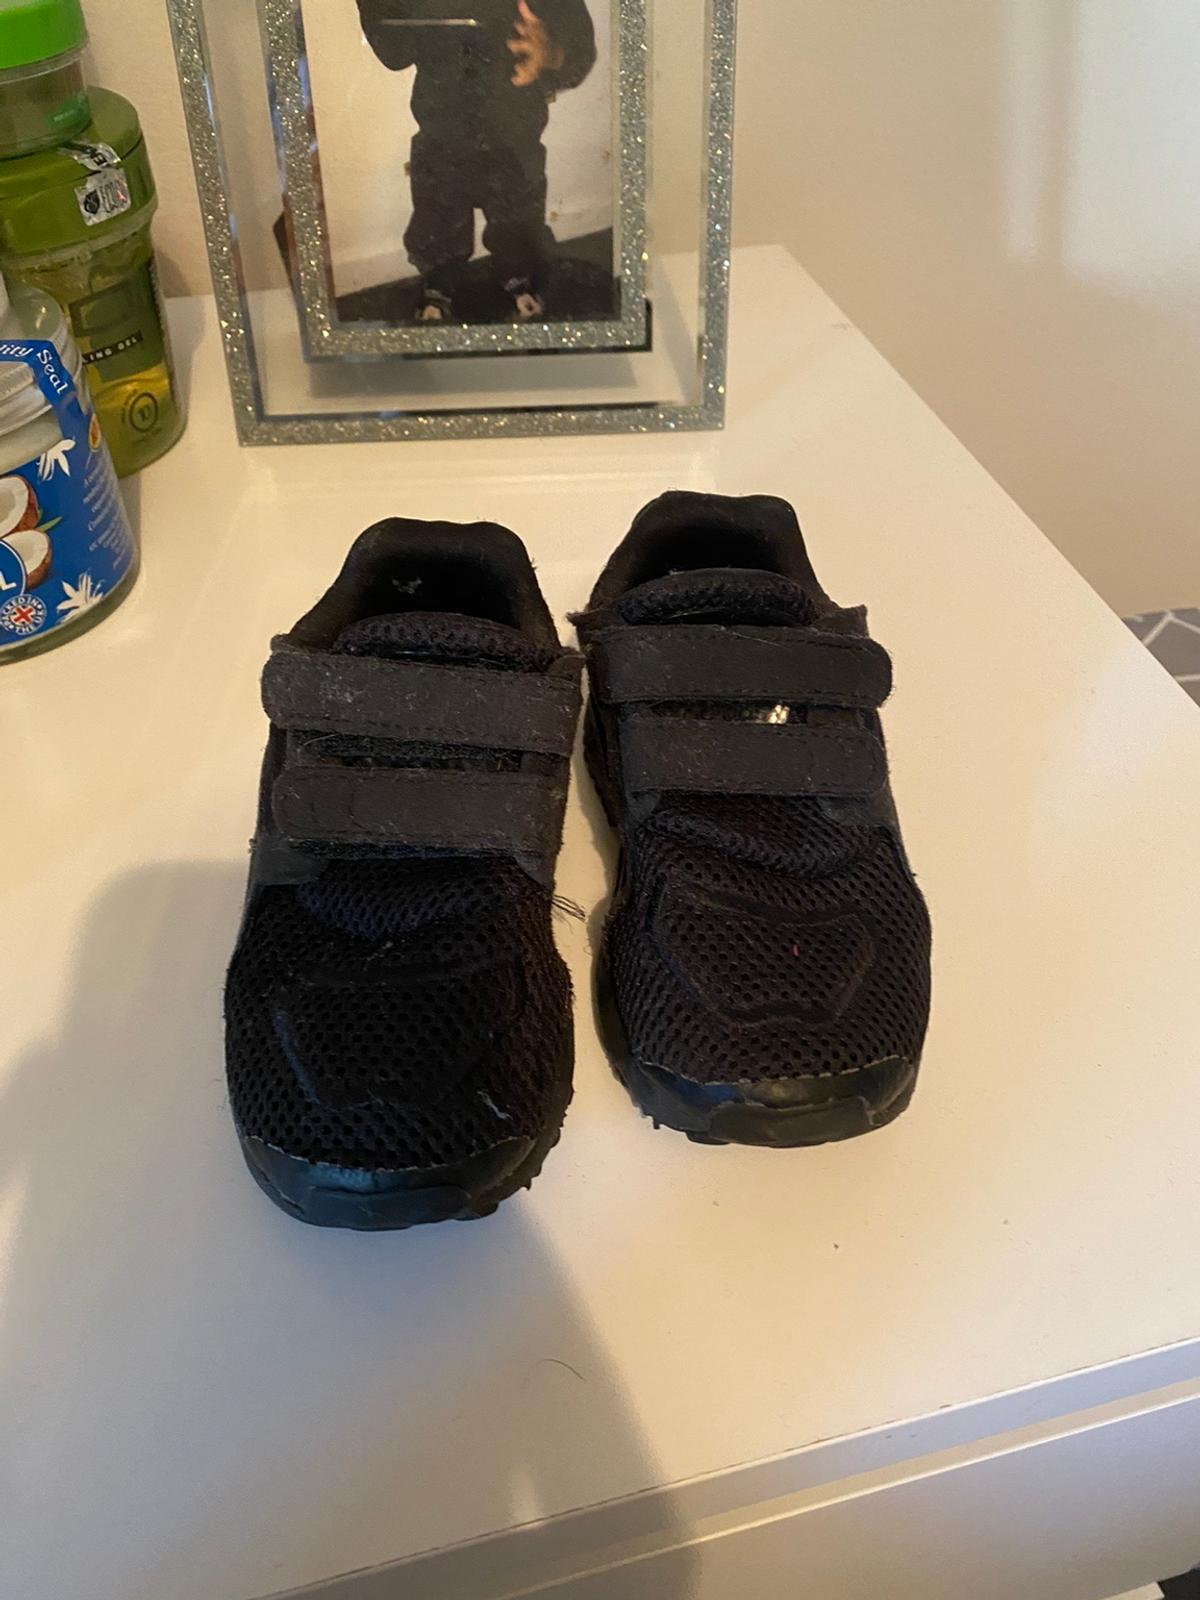 Adidas kids trainers Great condition Size 6  Postage only £3.99 extra - no collection due to COVID